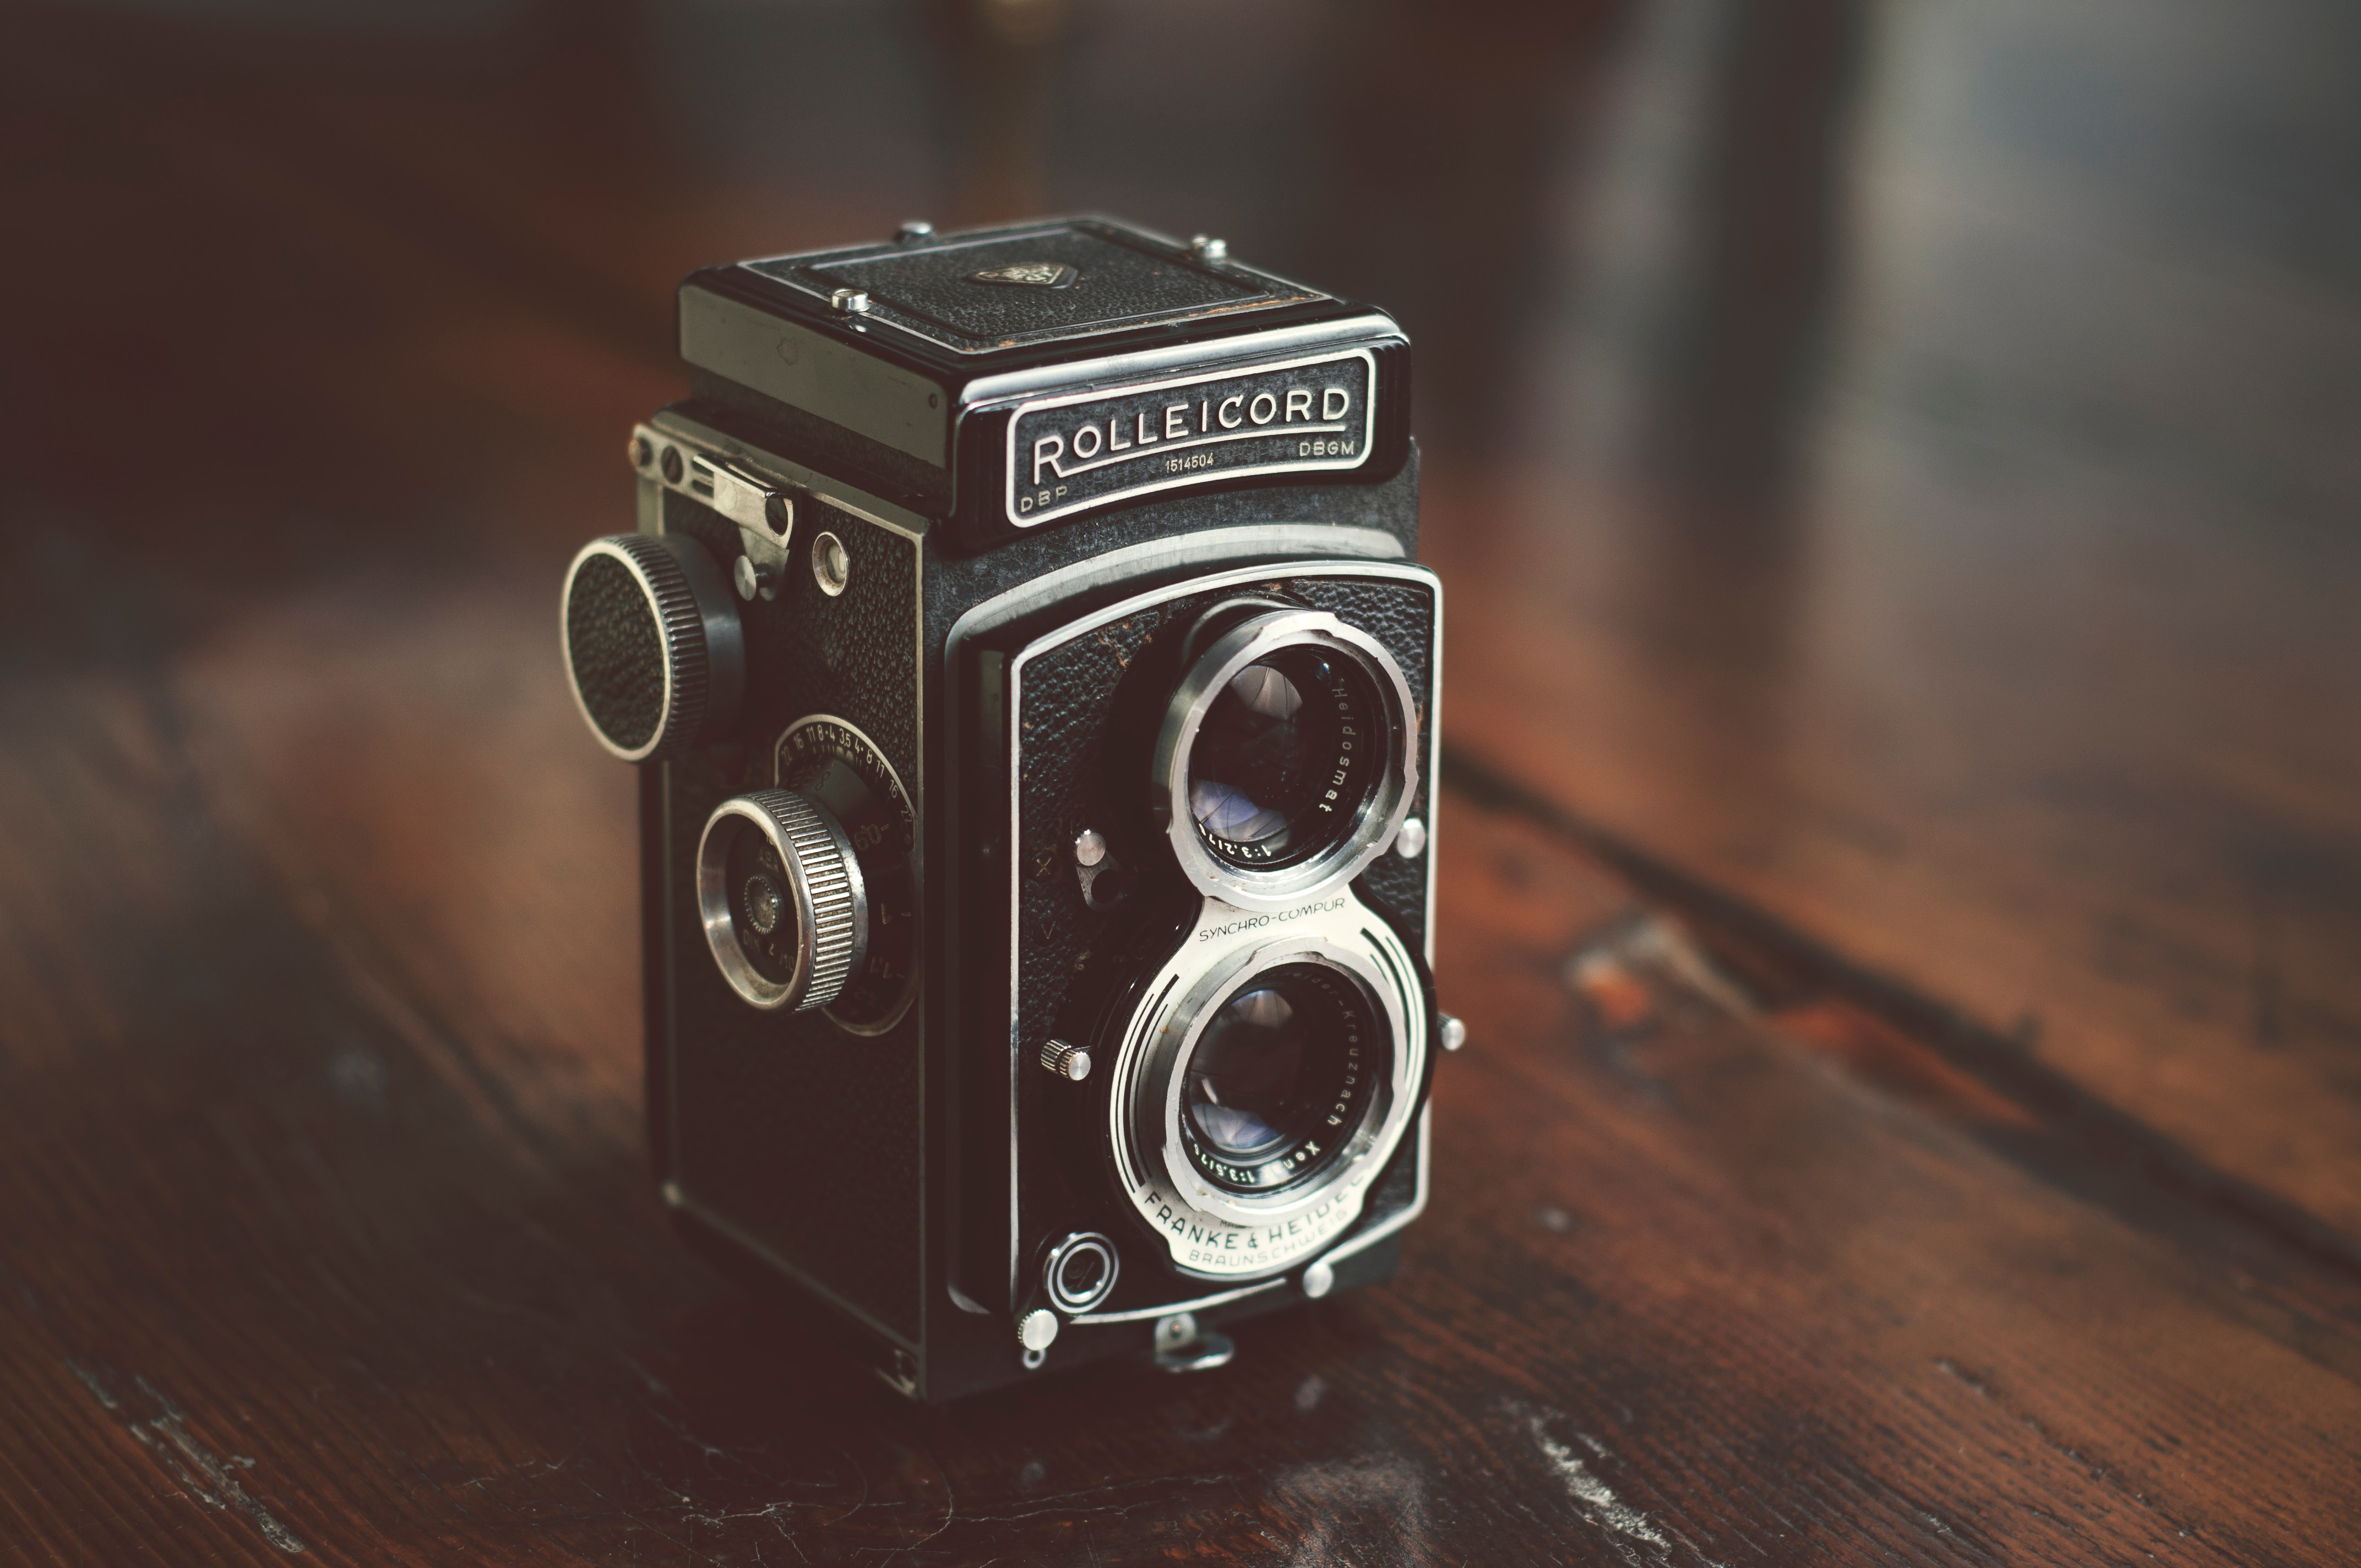 101256 download wallpaper Technologies, Technology, Camera, Old, Vintage, Lenses, Photo, Photography screensavers and pictures for free